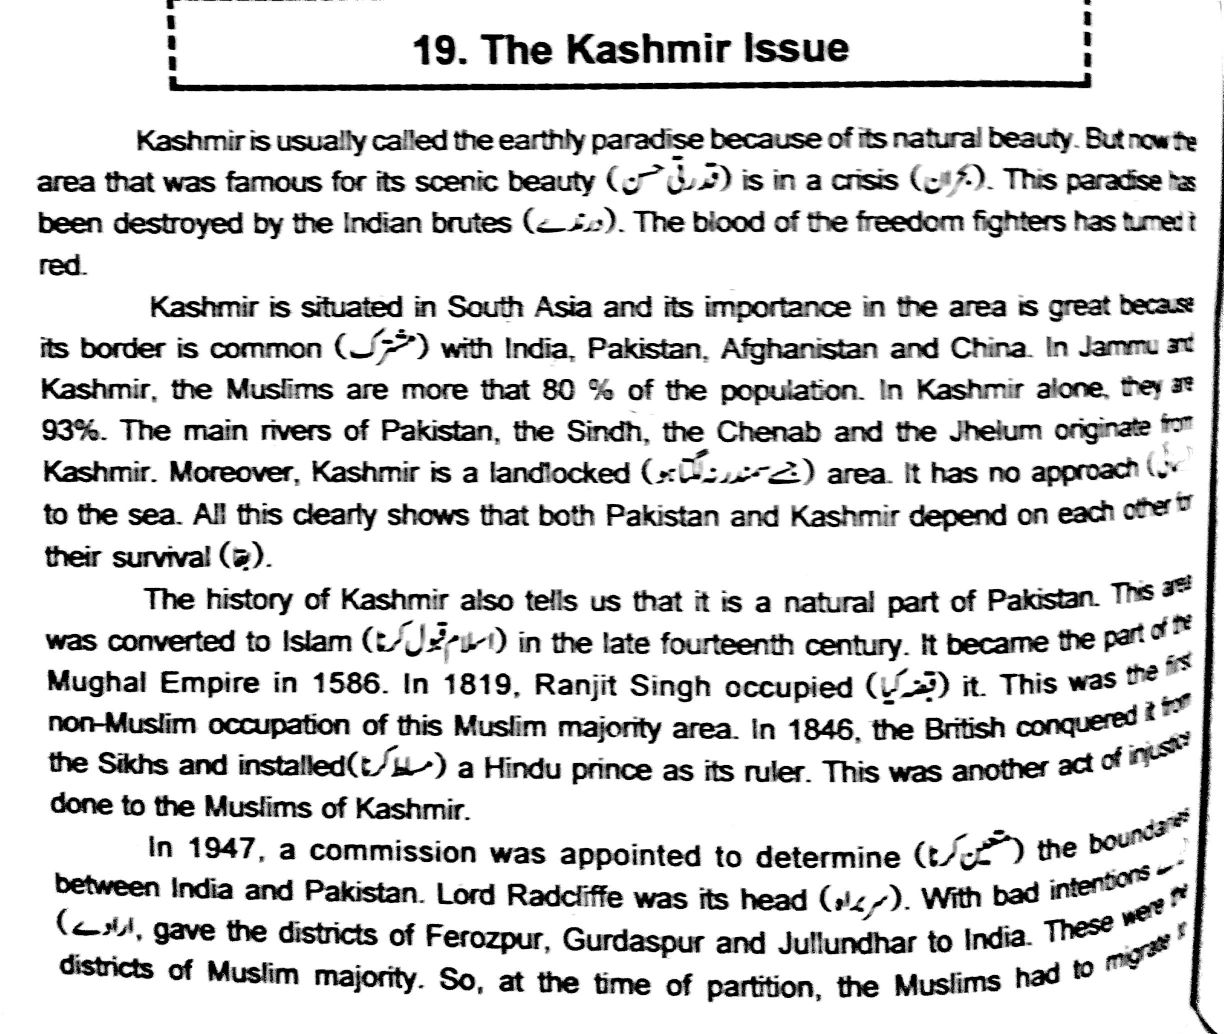 taoism essay kashmir issue essay pak education info the kashmir  kashmir issue essay pak education info the kashmir problem essay the kashmir issue essay in english